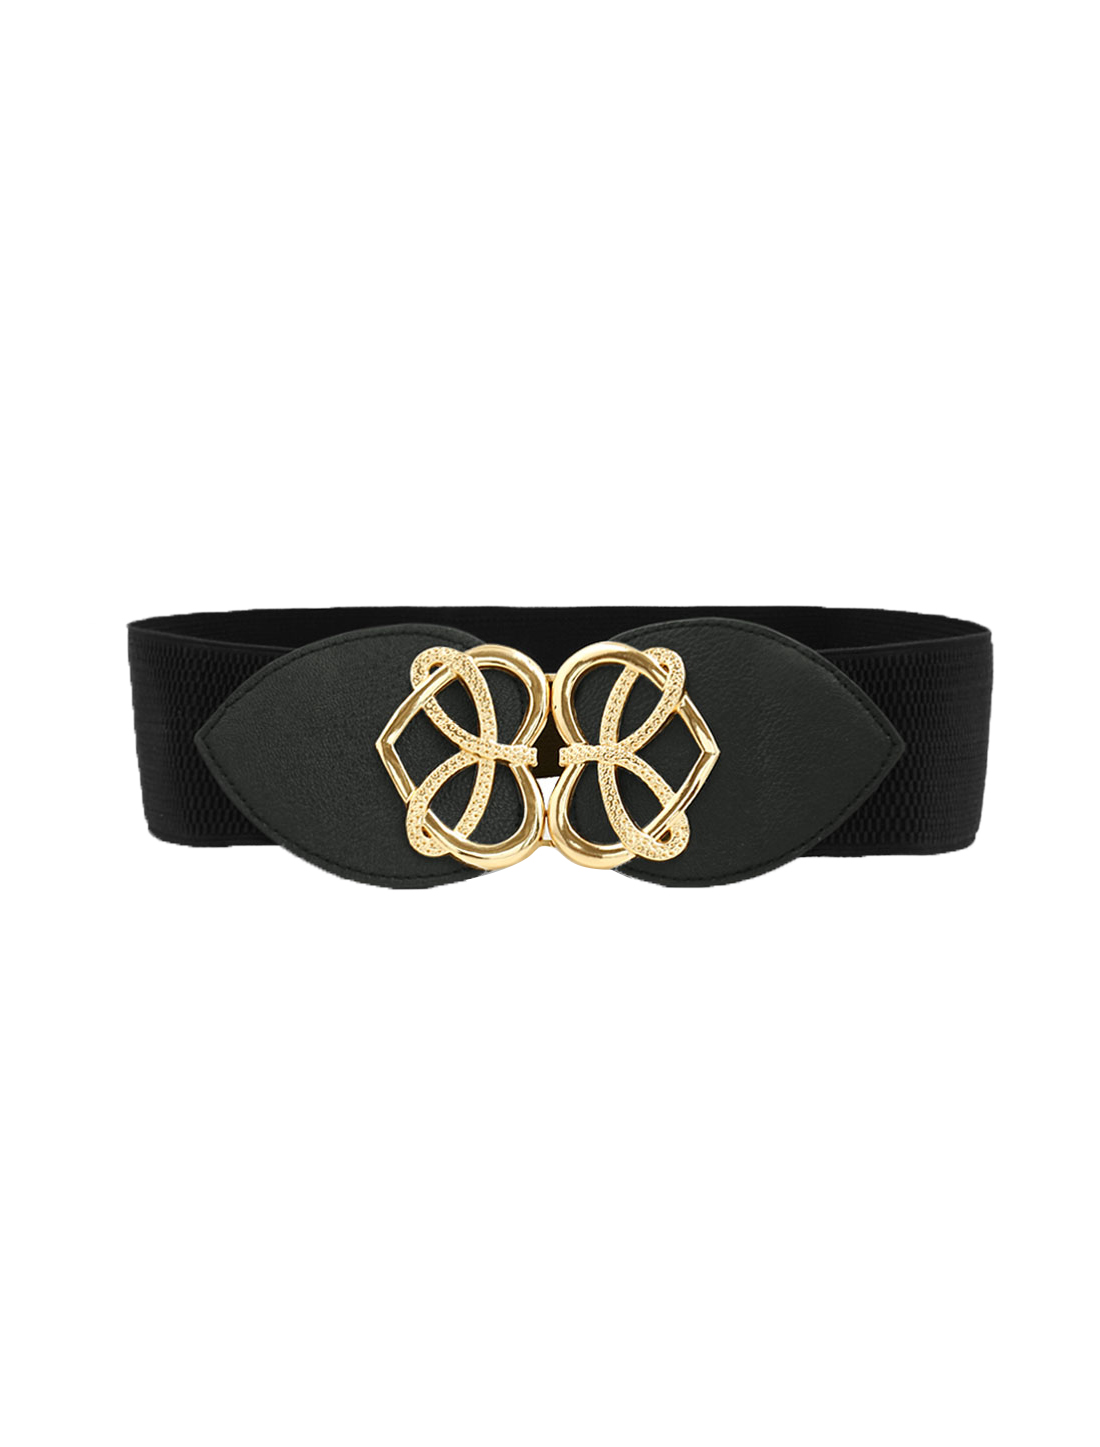 Women Interlocking Buckle Knot Heart Waist Belt Black